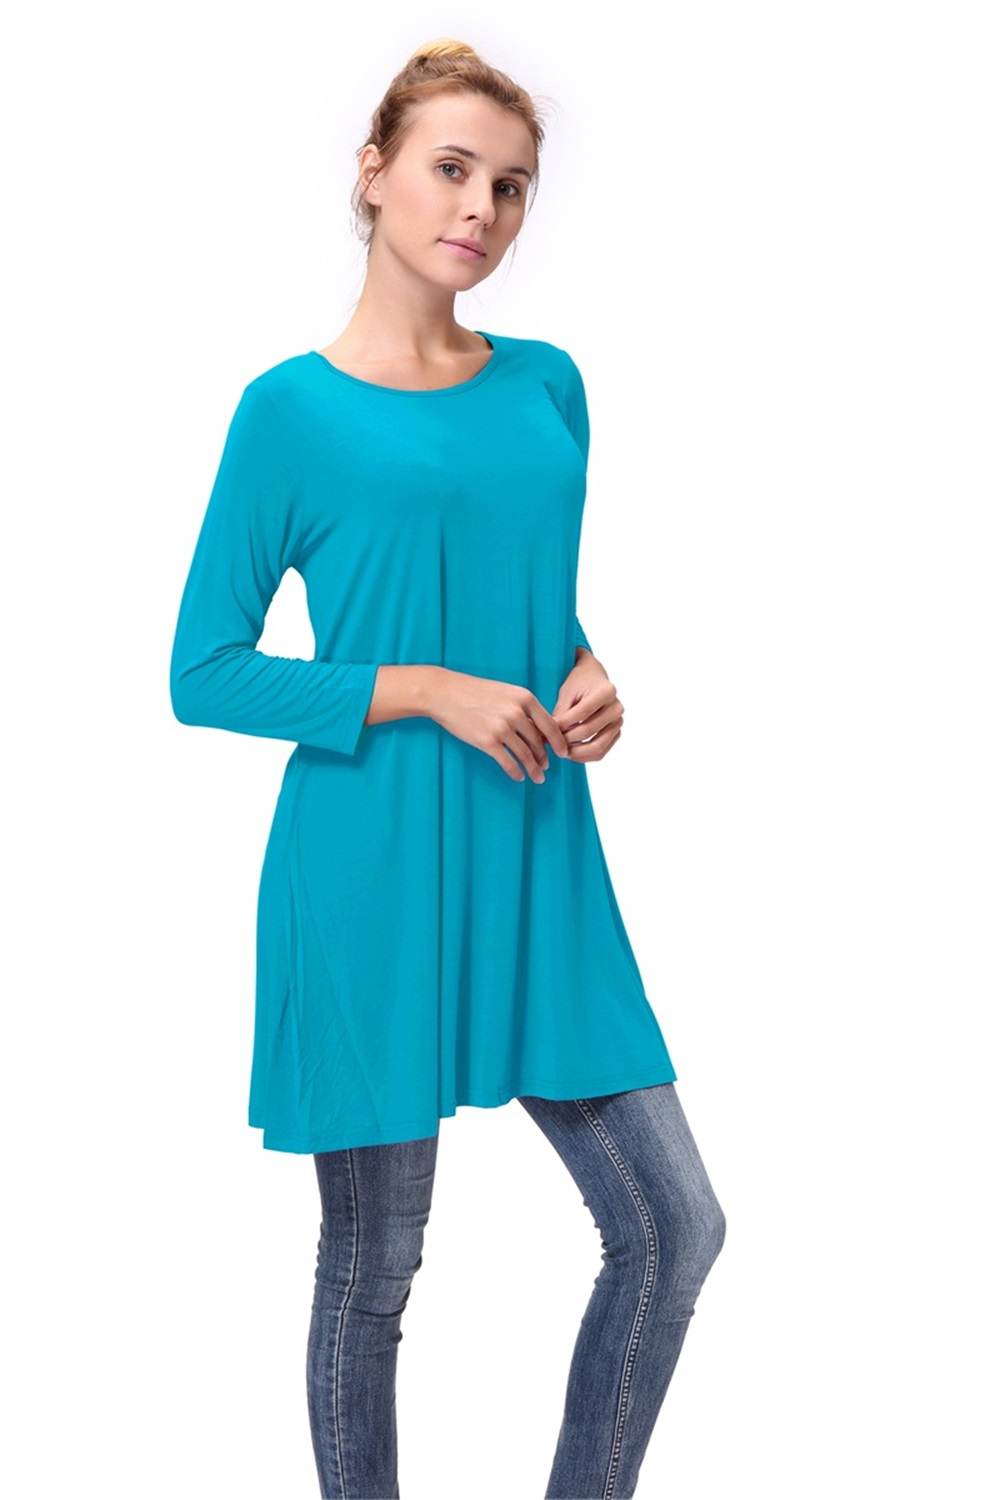 Women-039-s-Long-Tunic-Top-3-4-Sleeve-Dolman-Boat-Neck-USA-Dress-S-M-L-1X-2X-3X-PLUS thumbnail 30